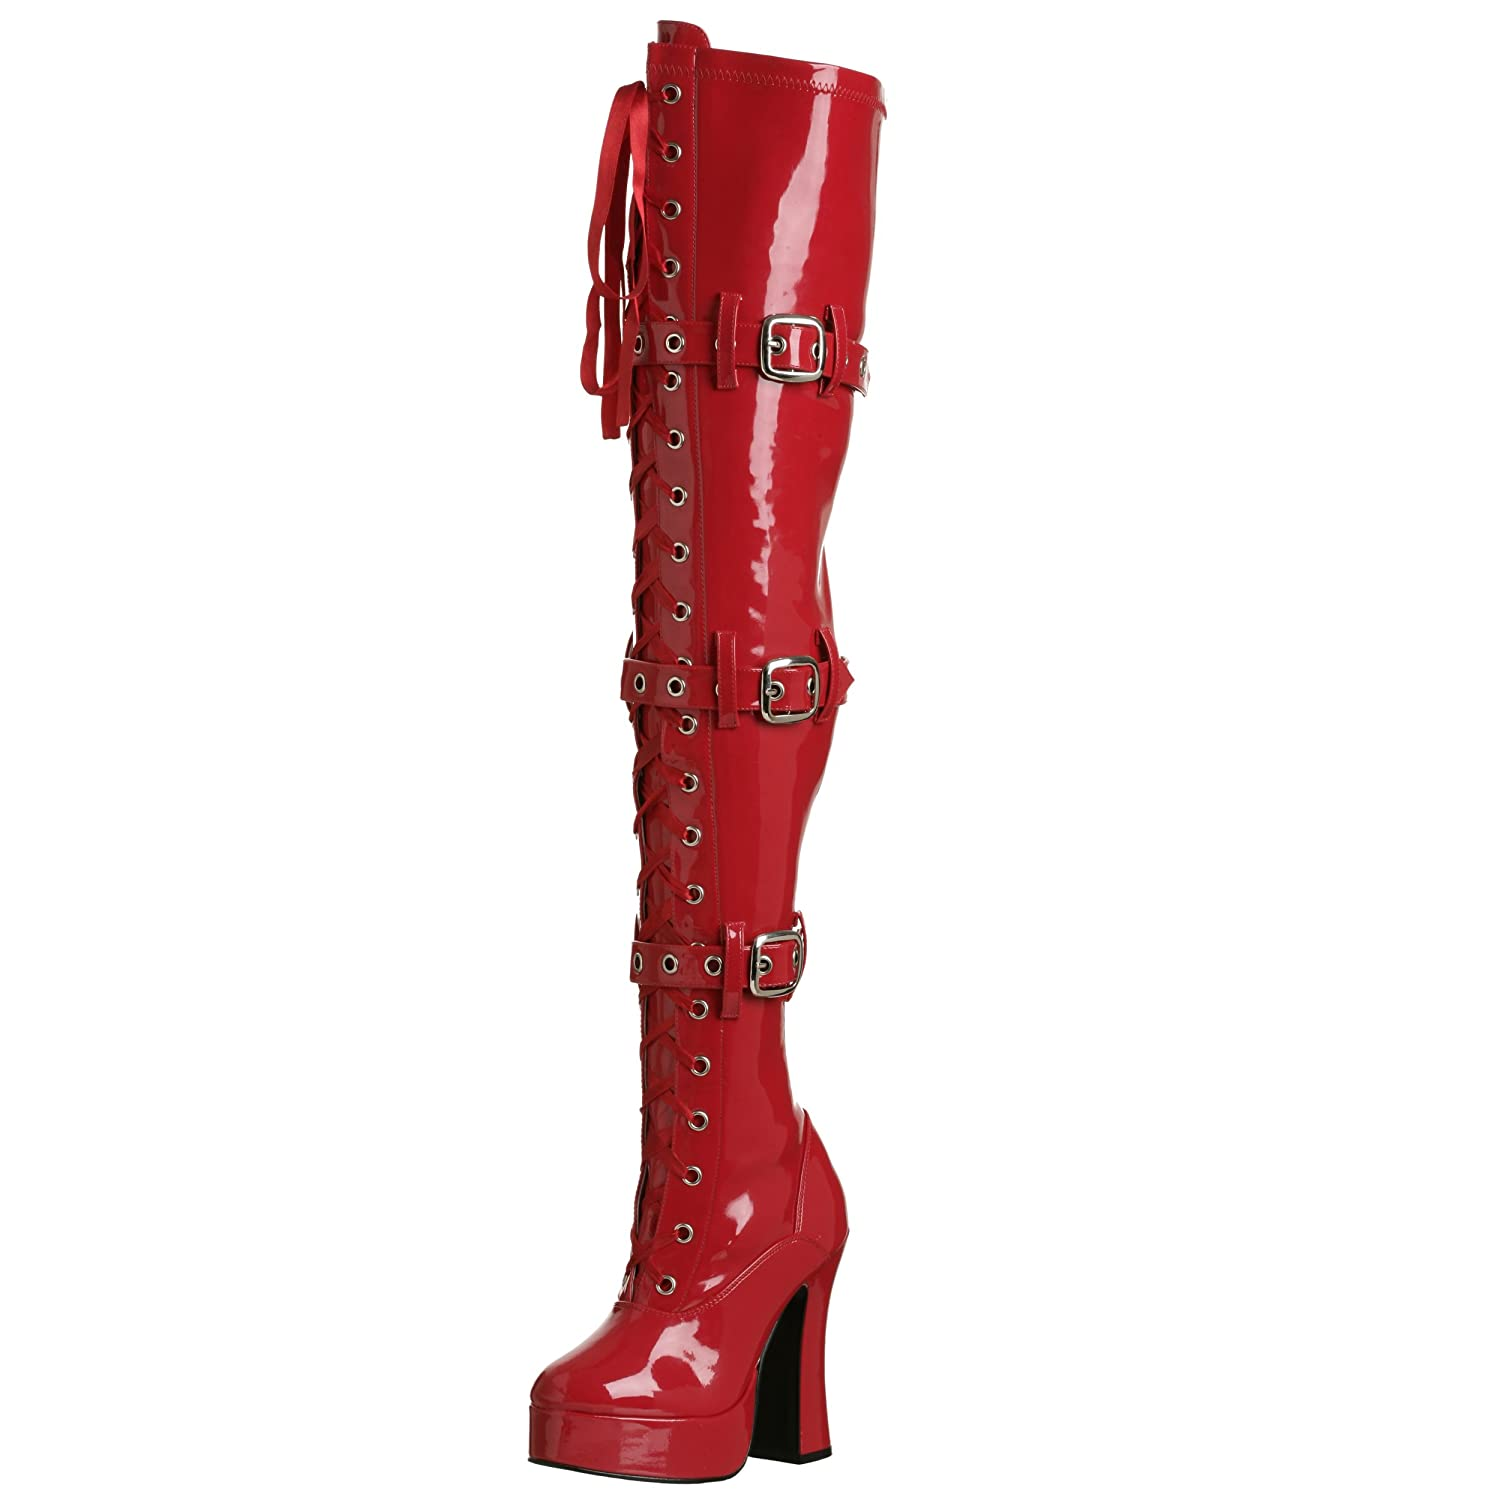 Pleaser Women's Electra-3028 Boot B0002Z1N2M 6 B(M) US|Red Stretch Patent